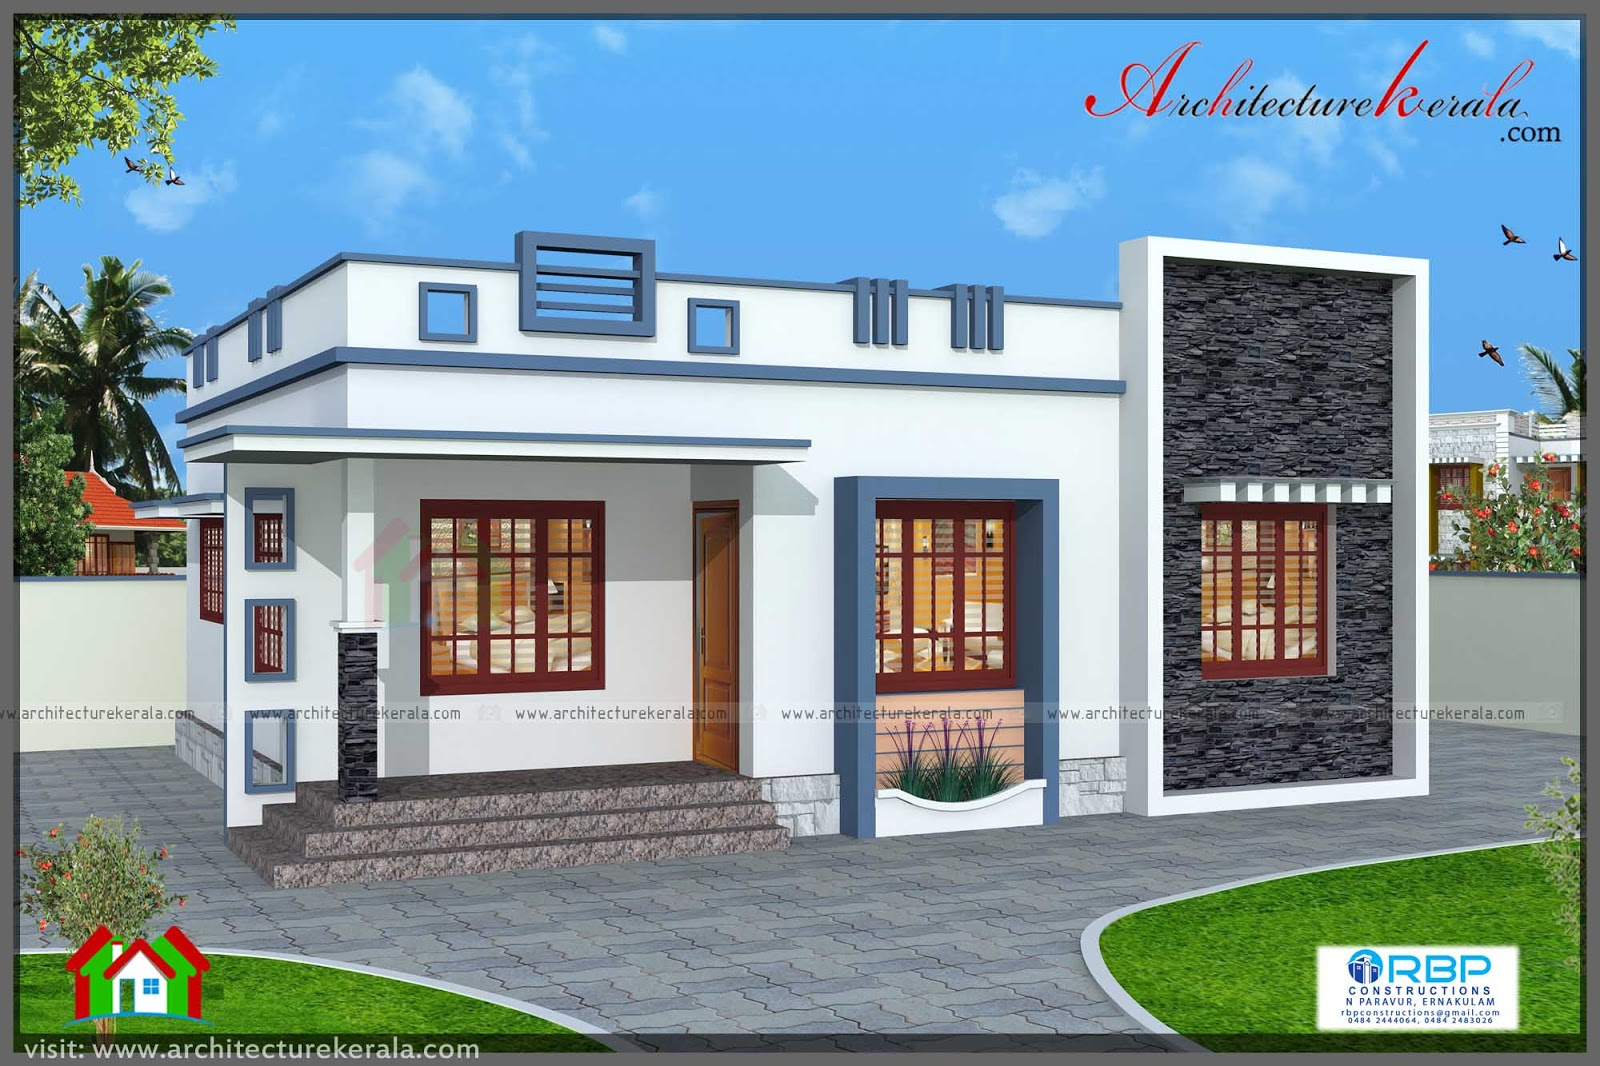 760 square feet 3 bedroom house plan architecture kerala for Three bedroom house plans kerala style